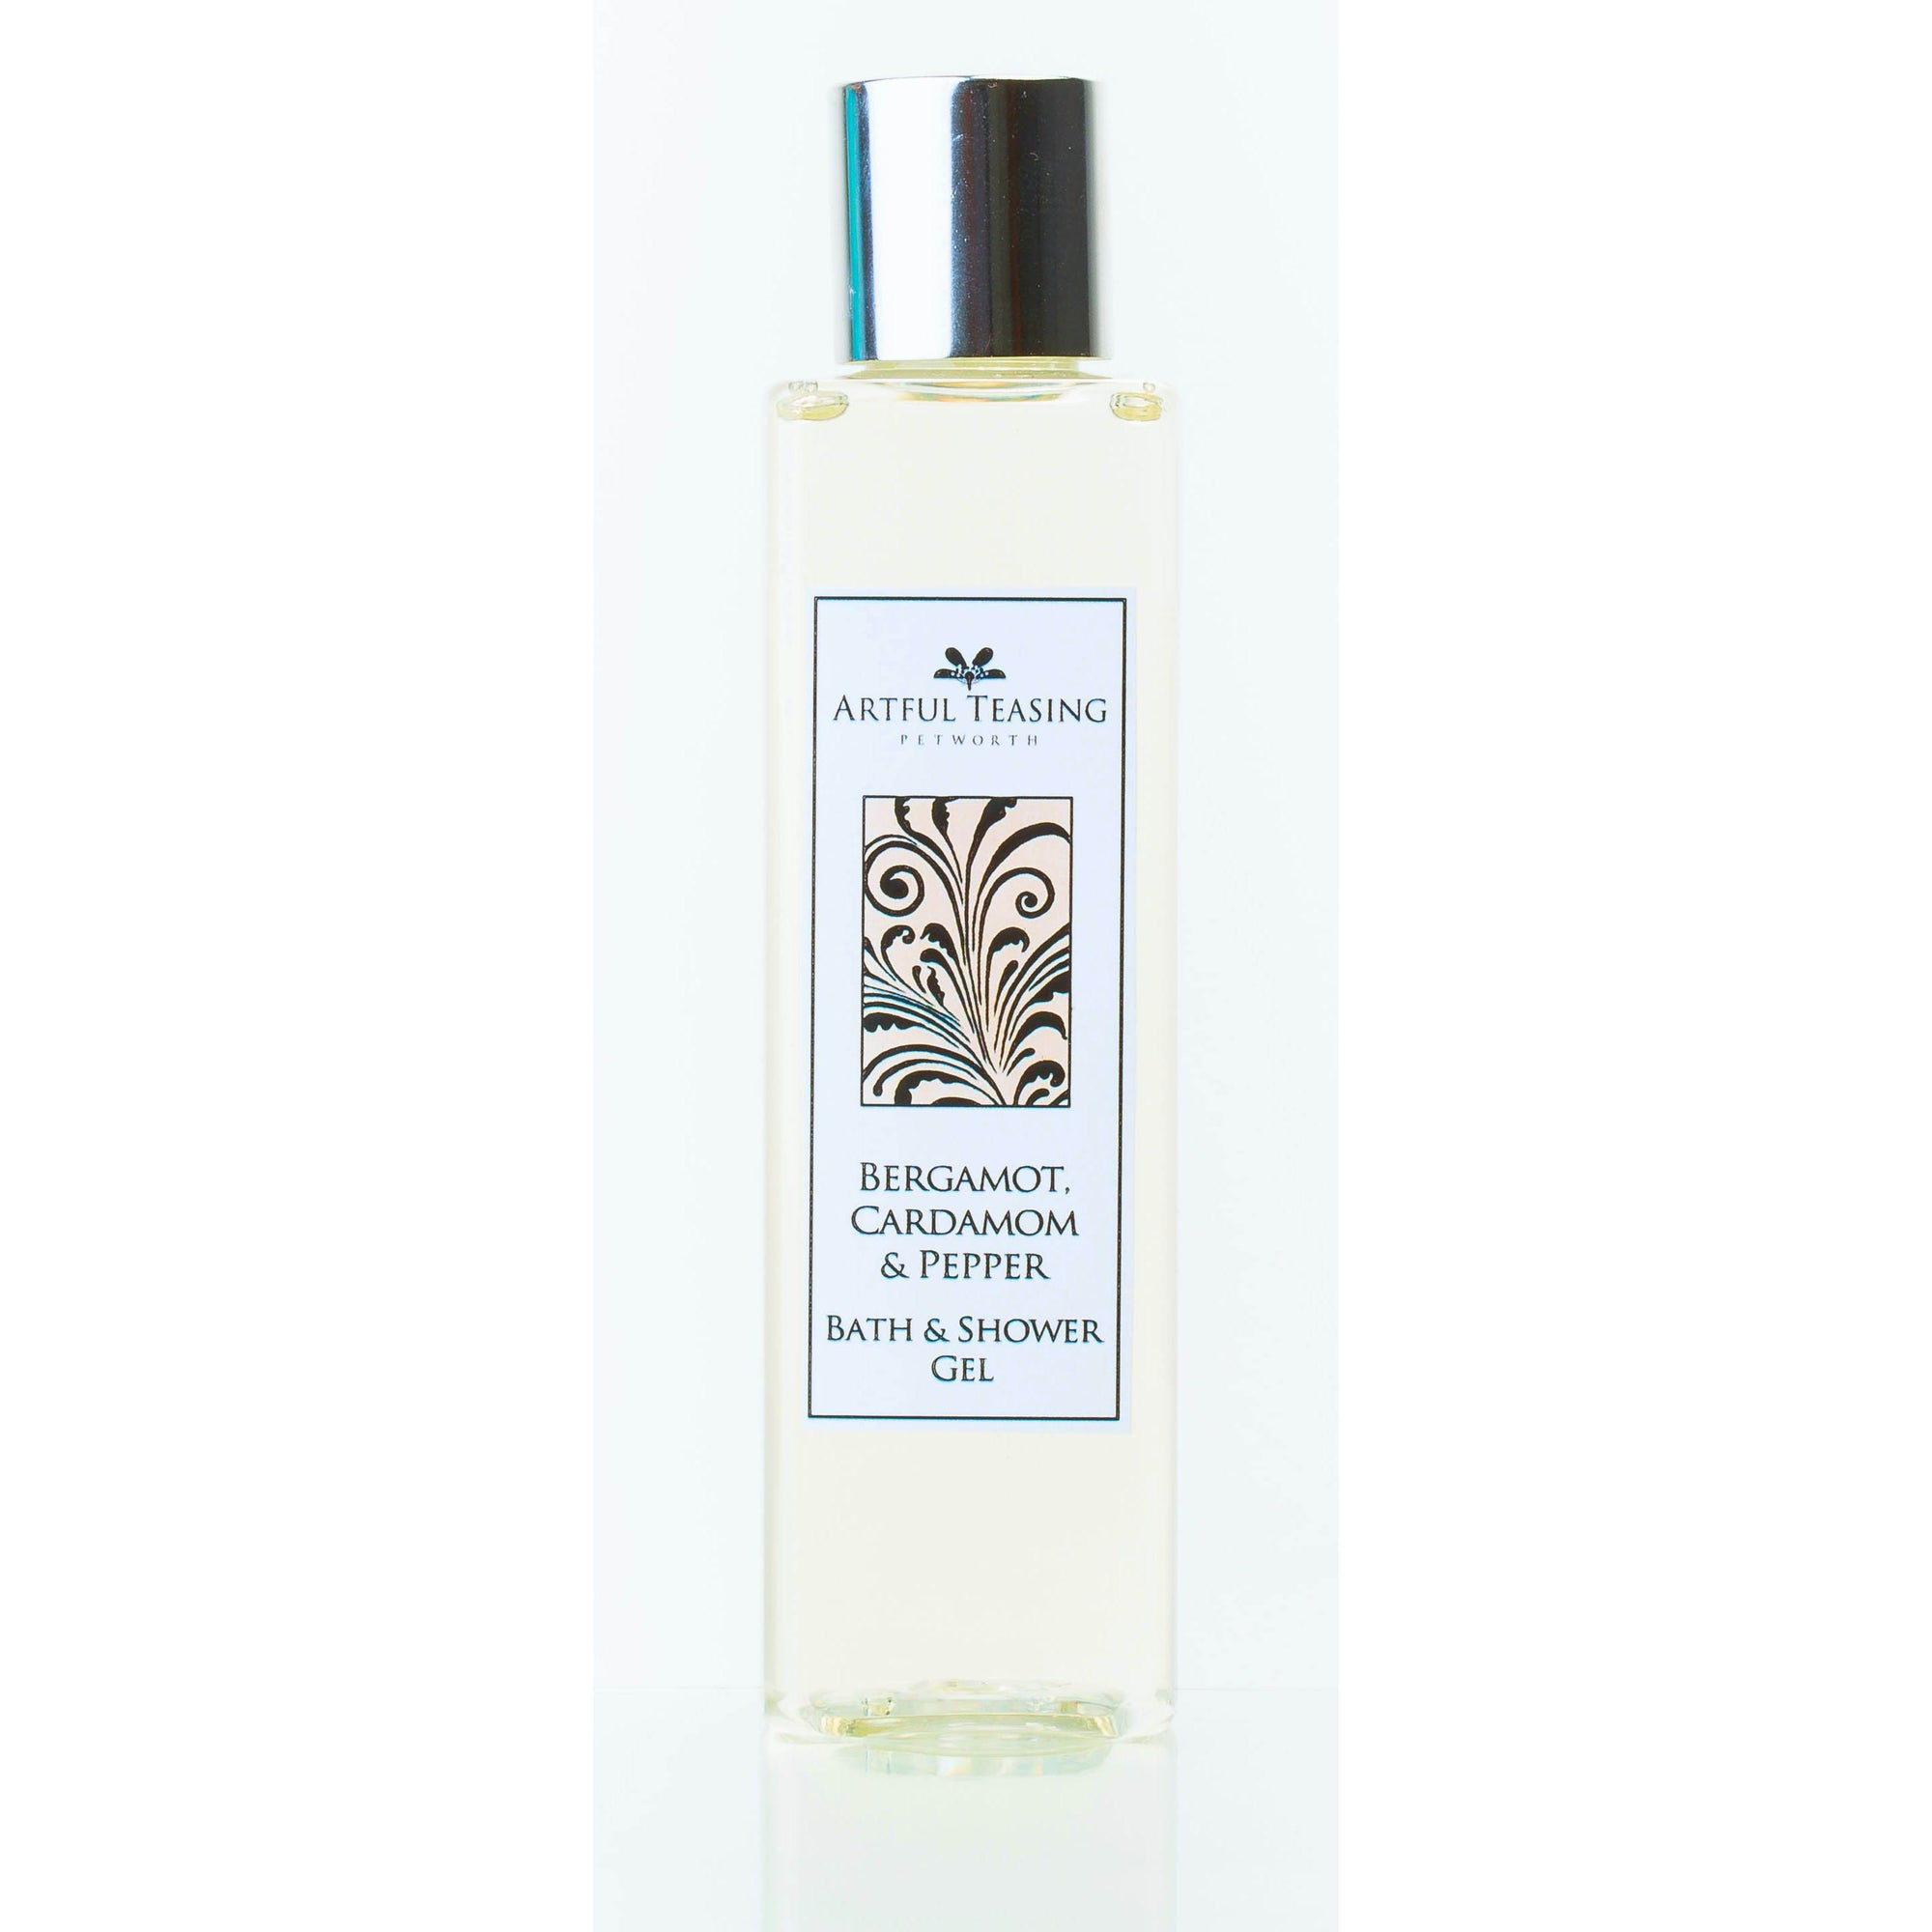 Bergamot, Cardamom & Pepper Bath & Shower Gel 200ml